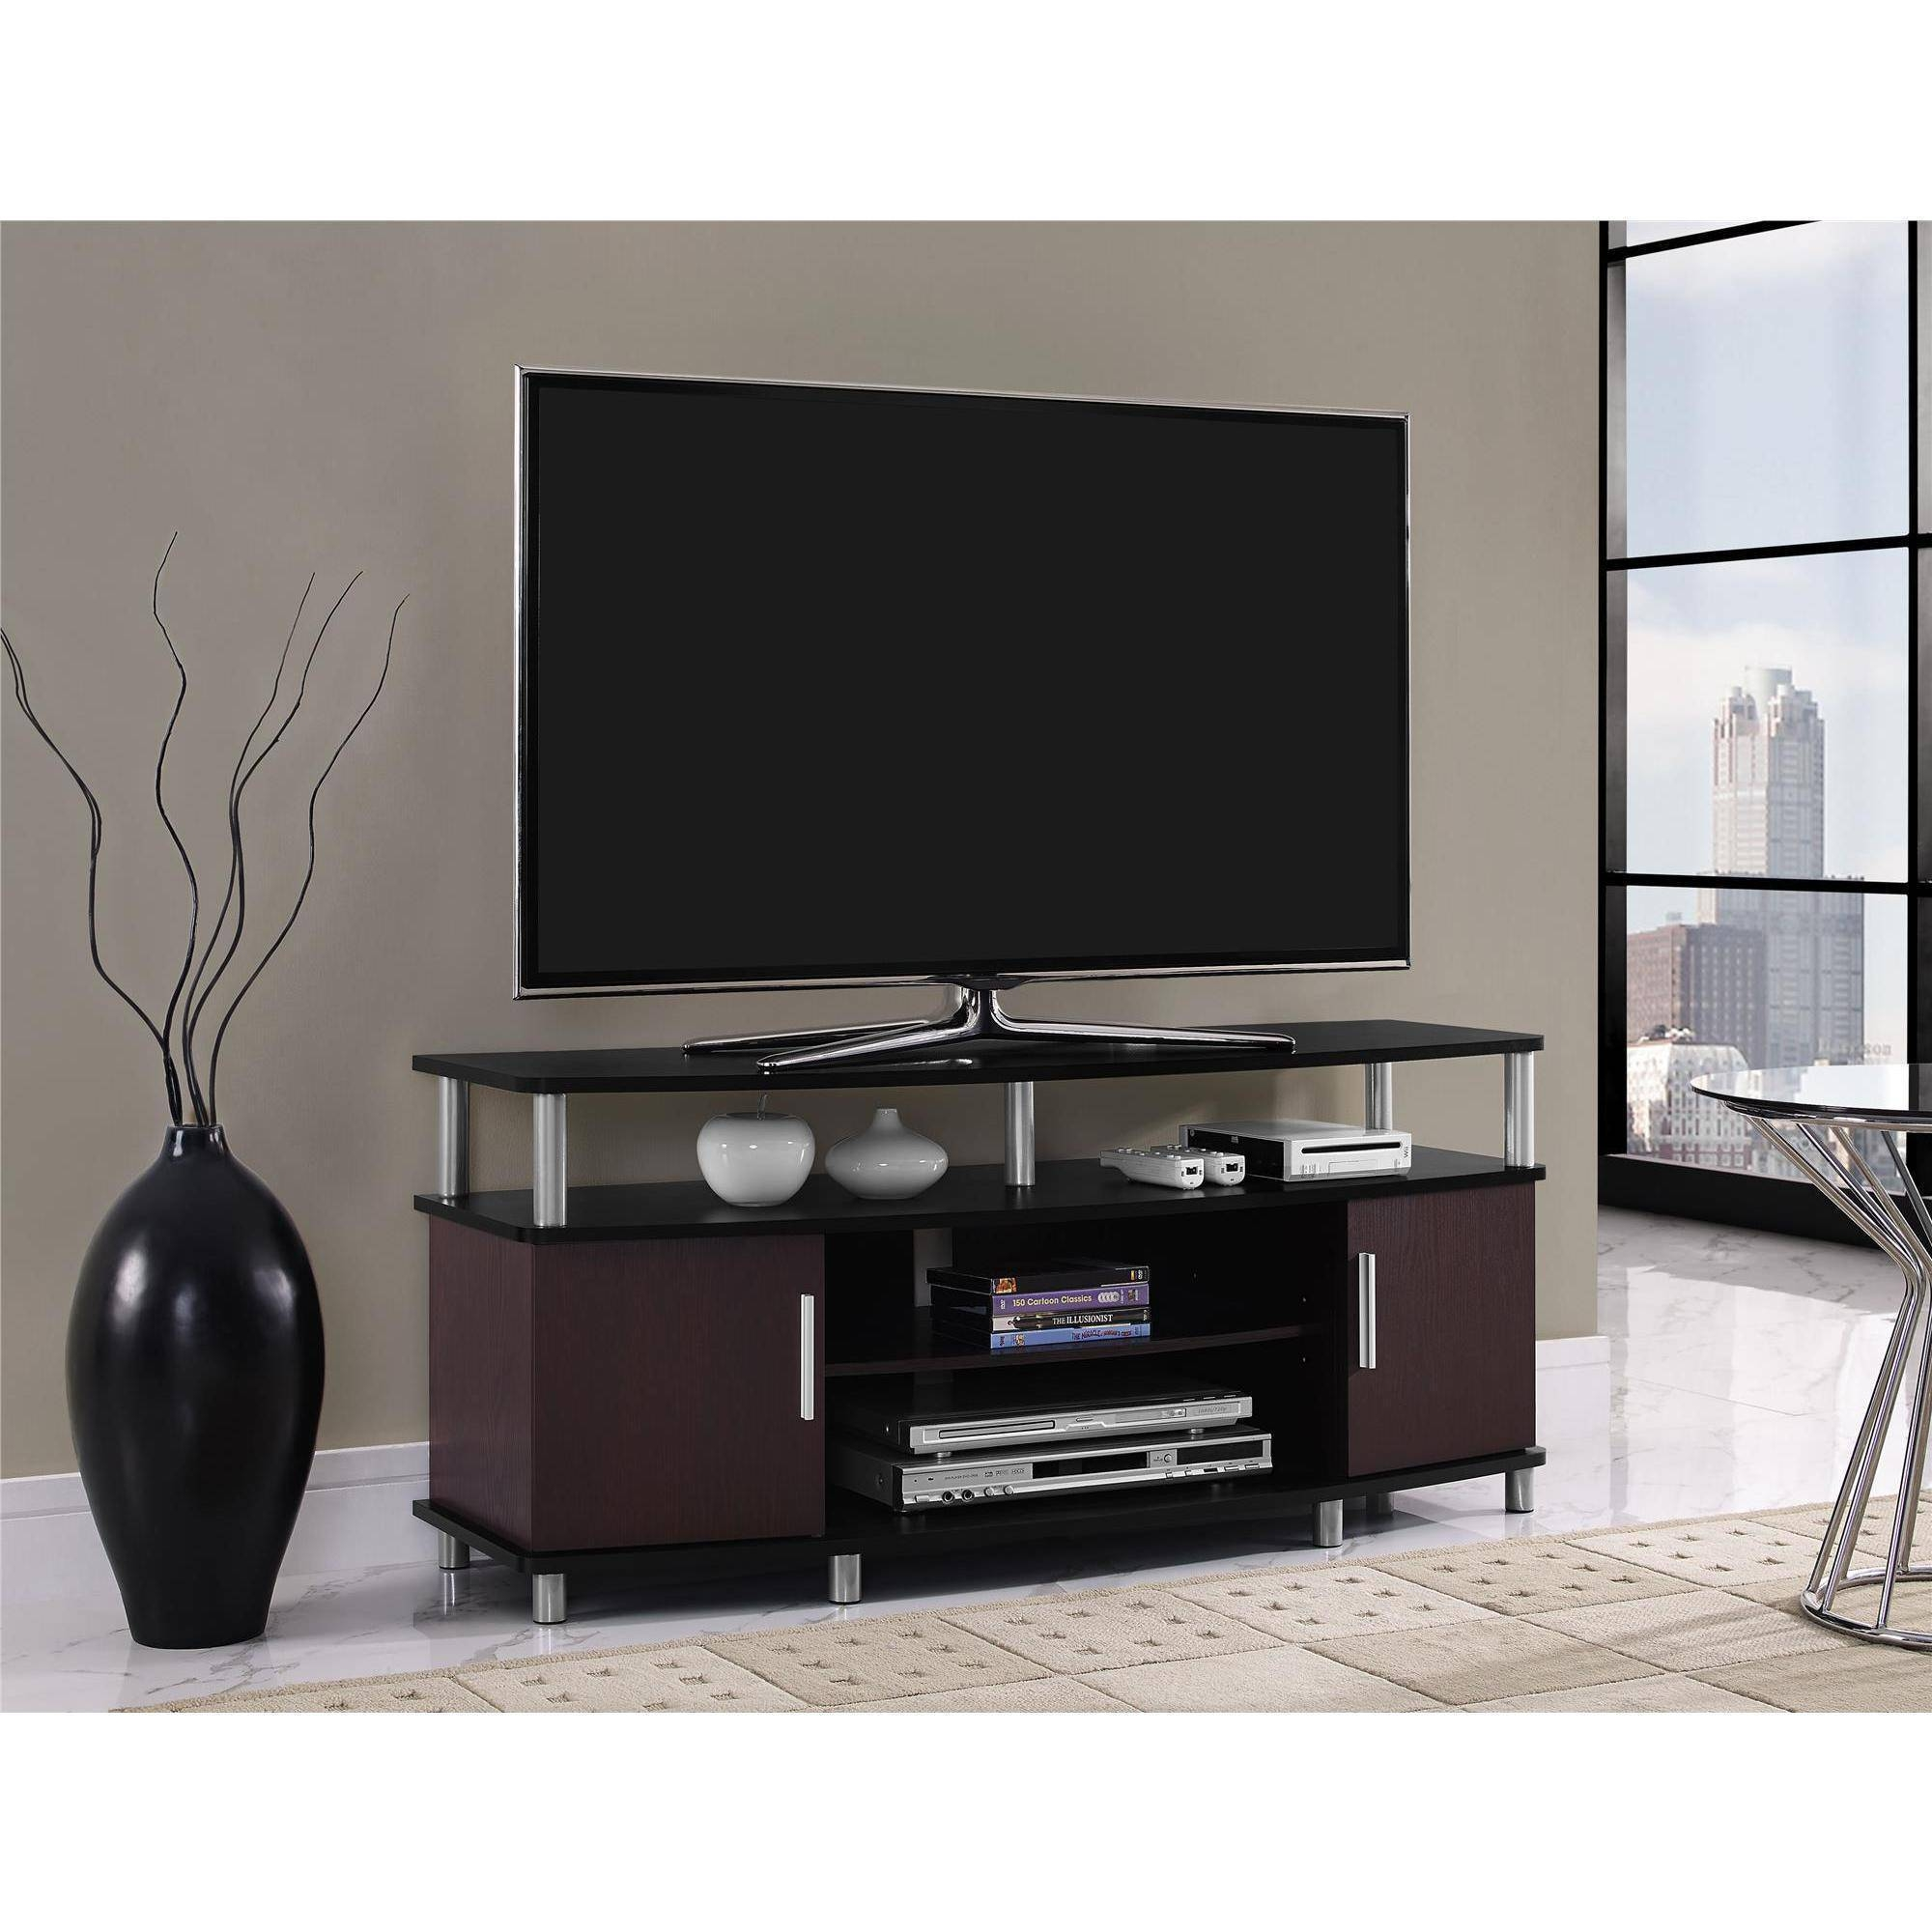 Tv Stands & Entertainment Centers - Walmart within Cherry Wood Tv Cabinets (Image 15 of 15)